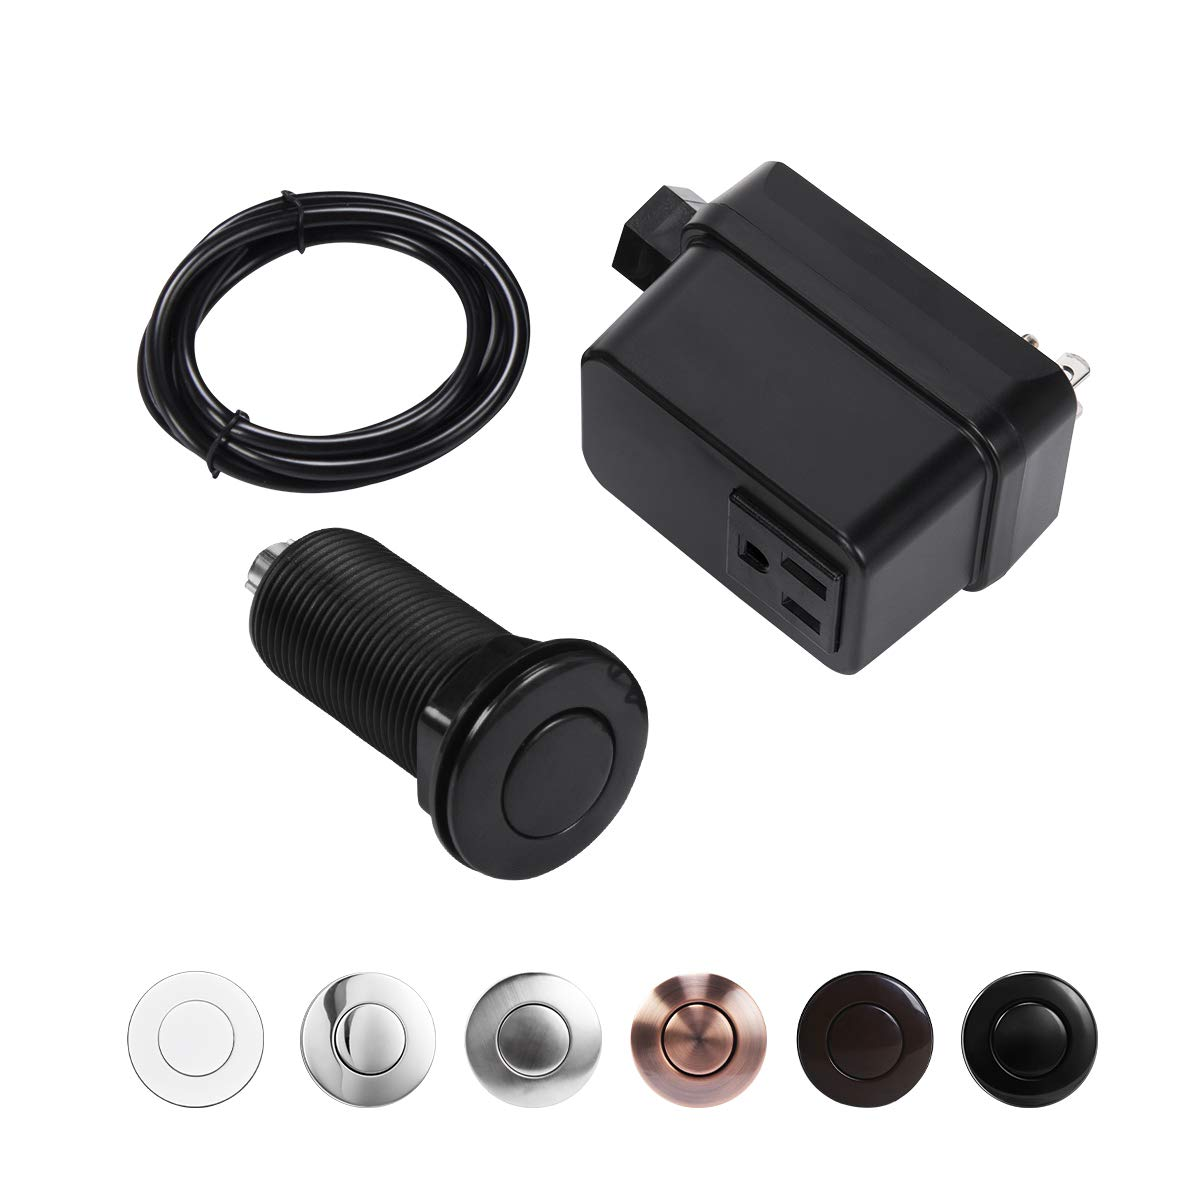 CLEESINK Garbage Disposal Air Switch Sink Top Kit with Single Outlet Black LONG/2.5""